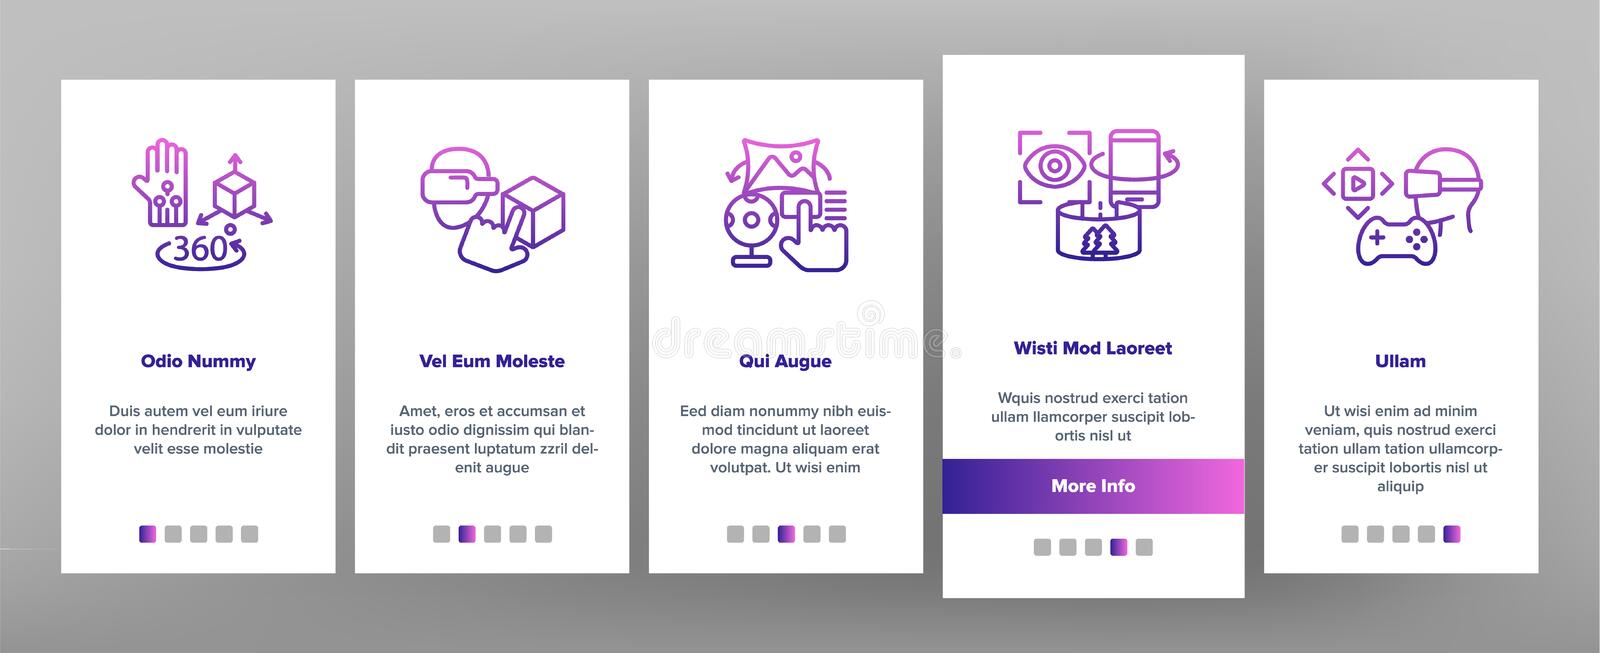 Augmented, Virtual Reality Vector Onboarding Mobile App Page Screen stock illustration